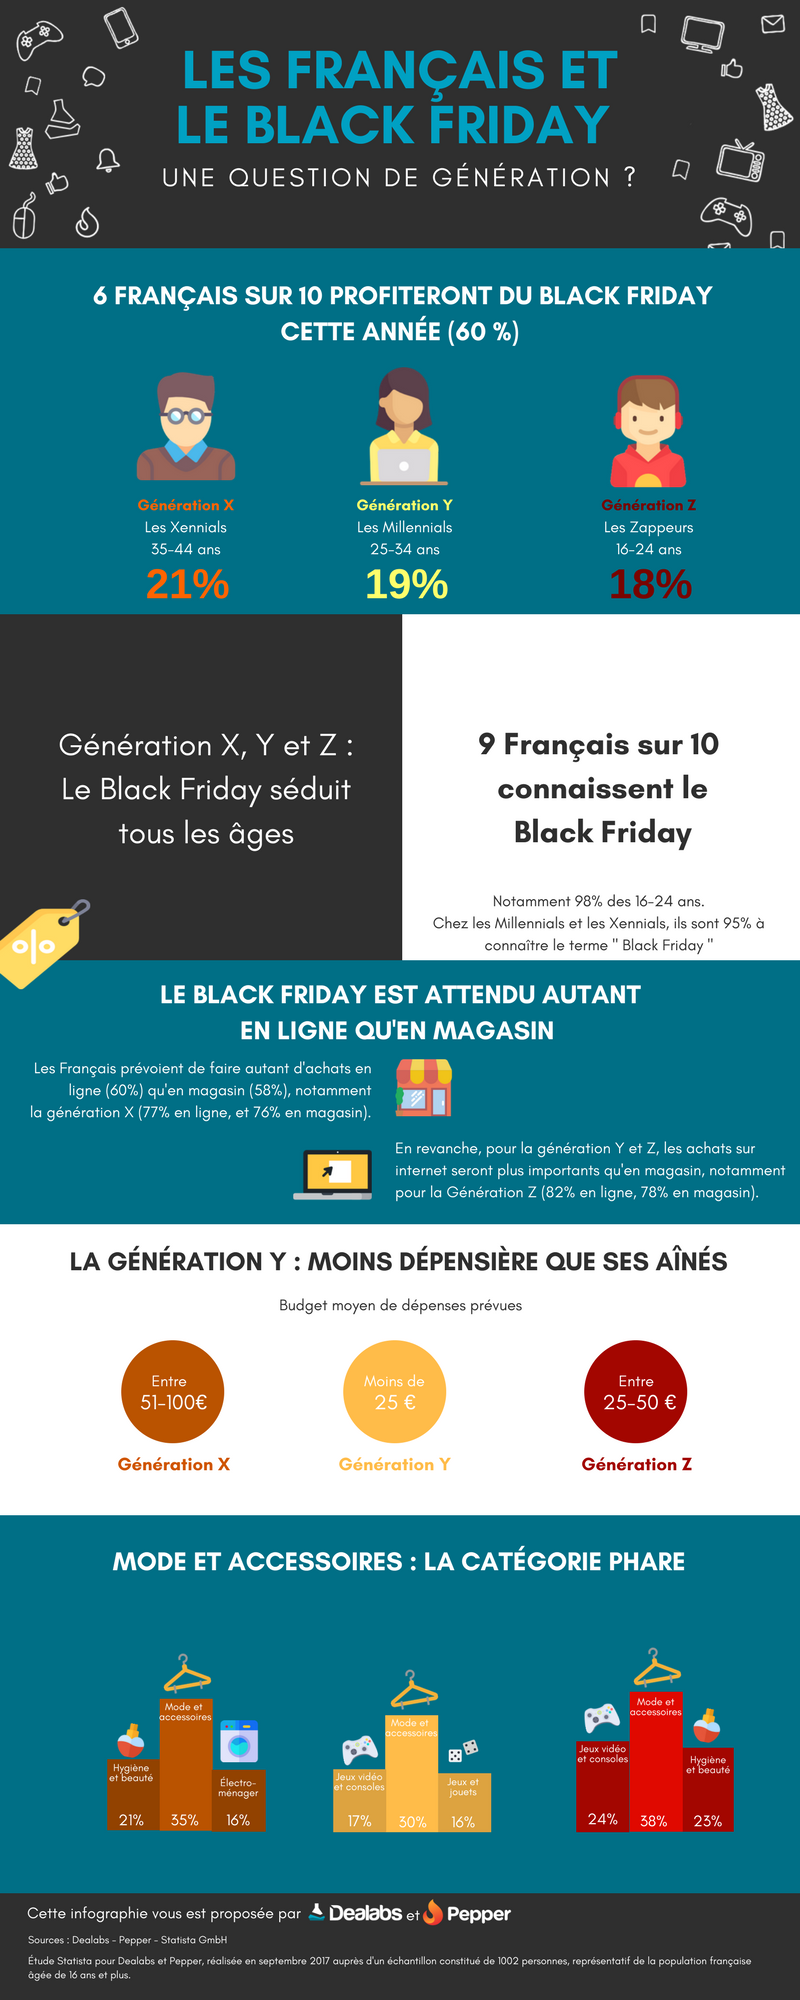 262554 infographie%20dealabs%20 %20les%20fran%c3%a7ais%20et%20le%20black%20friday fbf632 original 1509023249